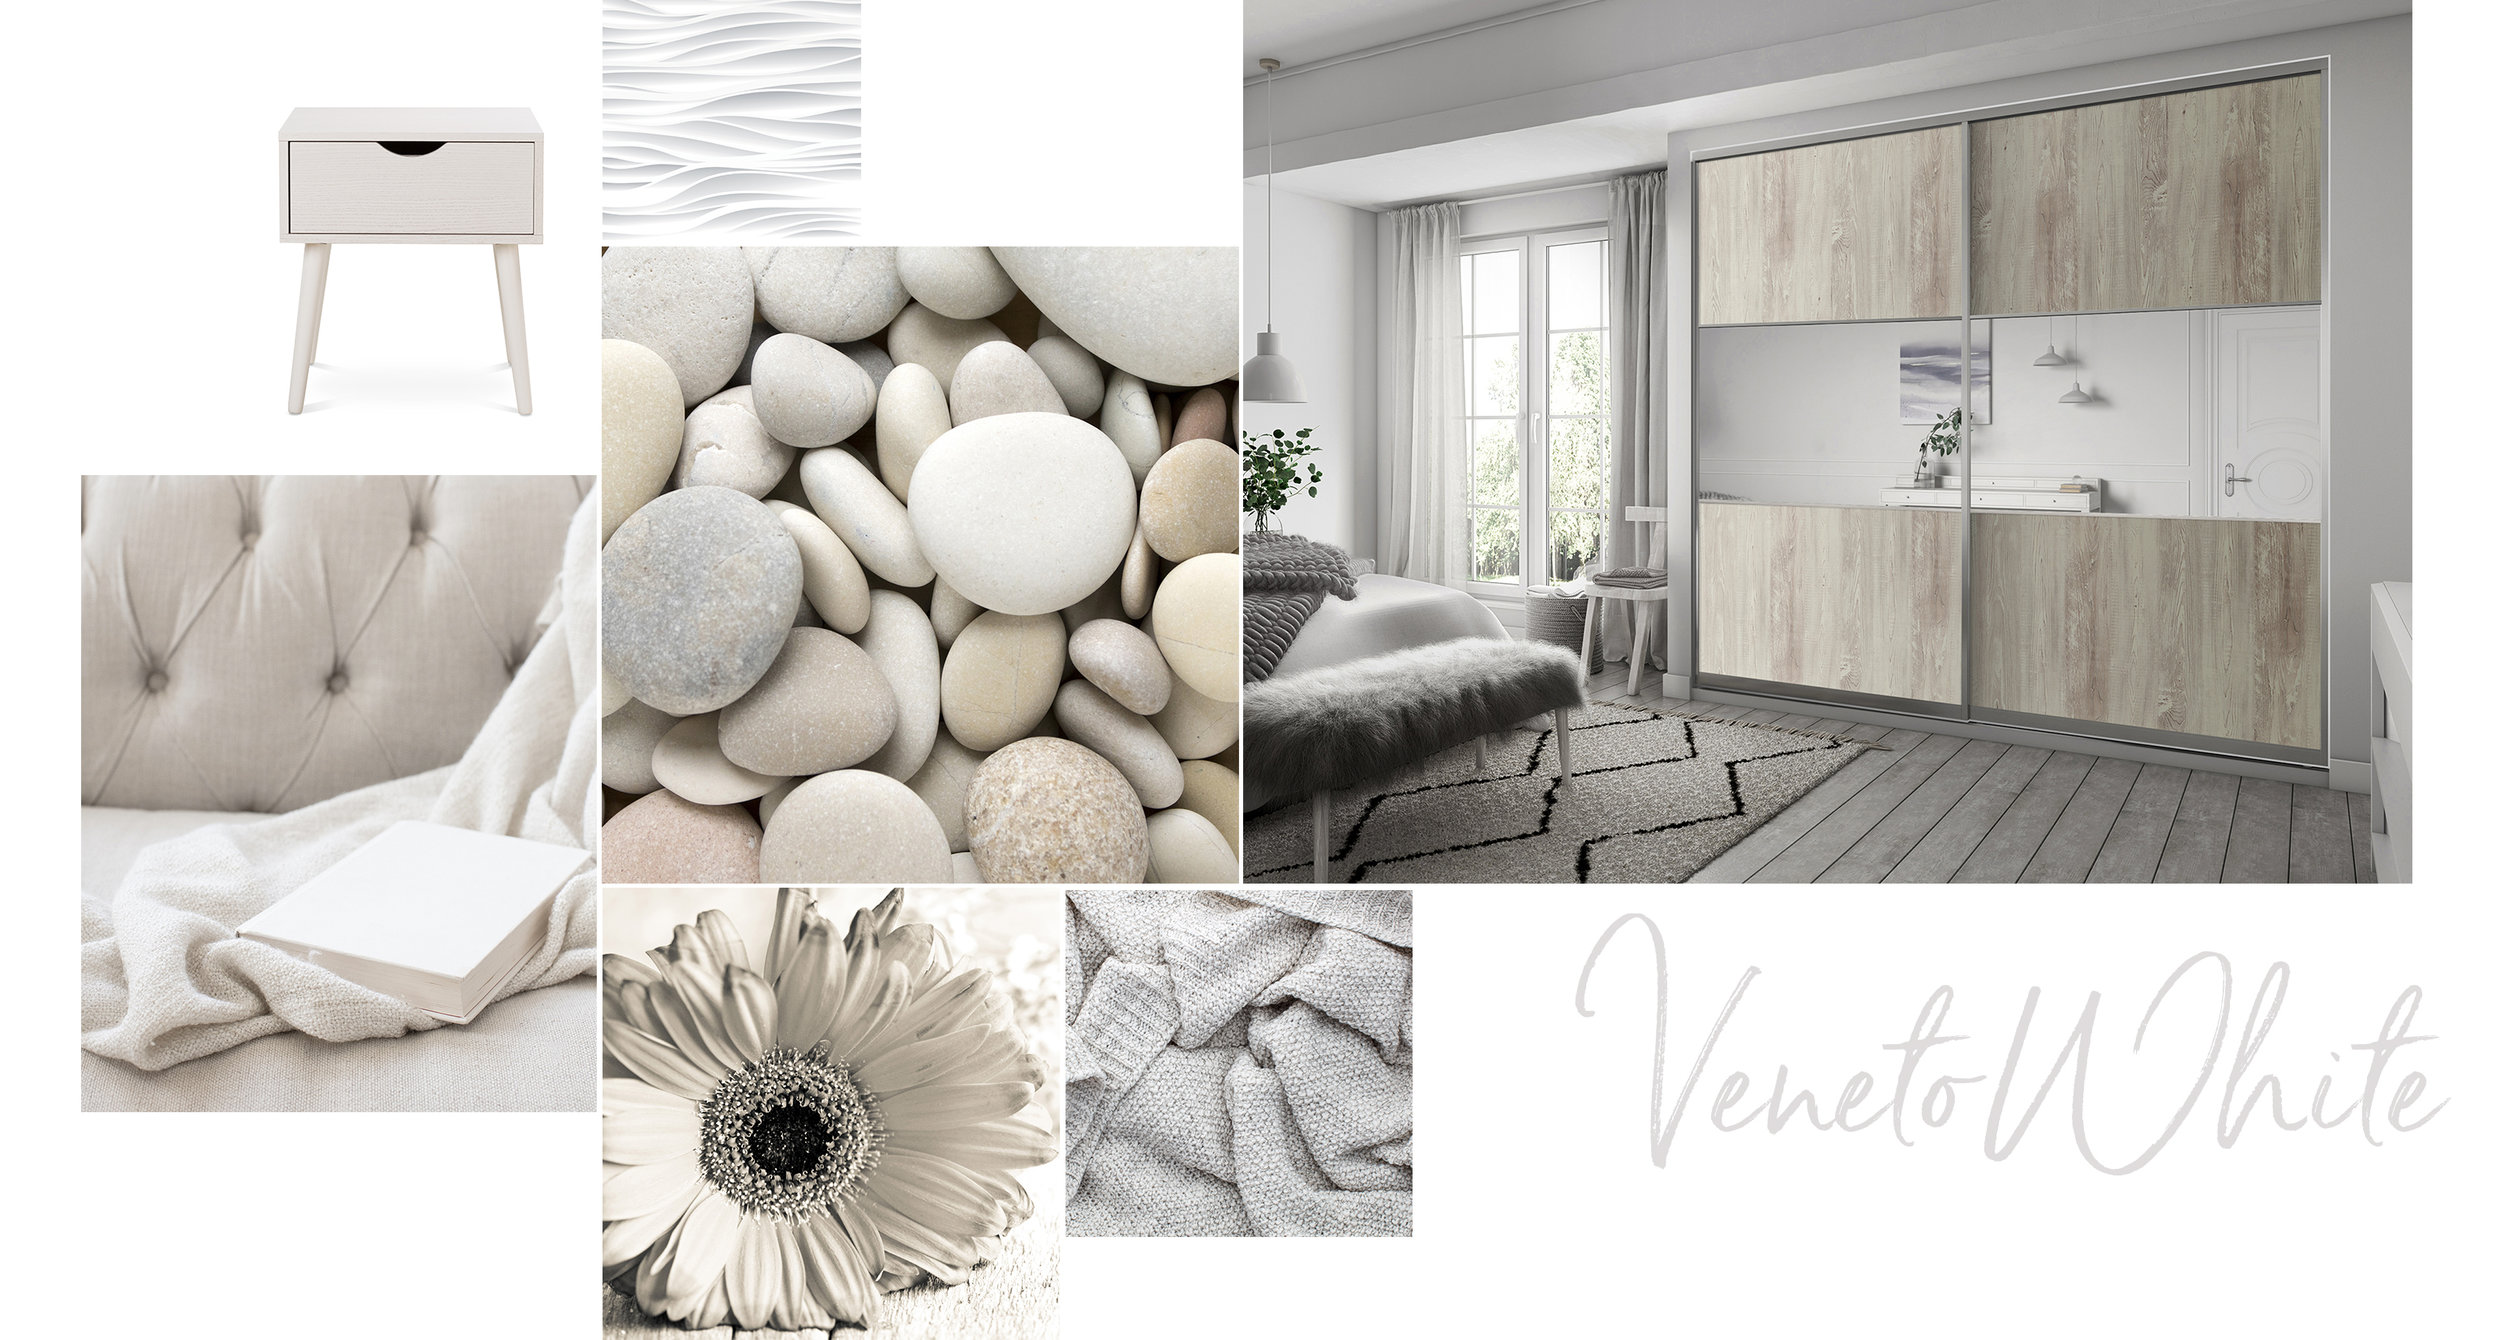 'Veneto White' - the purest of all our finishes, where whites are juxtaposed next to softest neutrals, to offer the most delicate of palettes. This tranquil selection of finishes is simple, yet beautiful and will look as stunning in years to come as it does today.